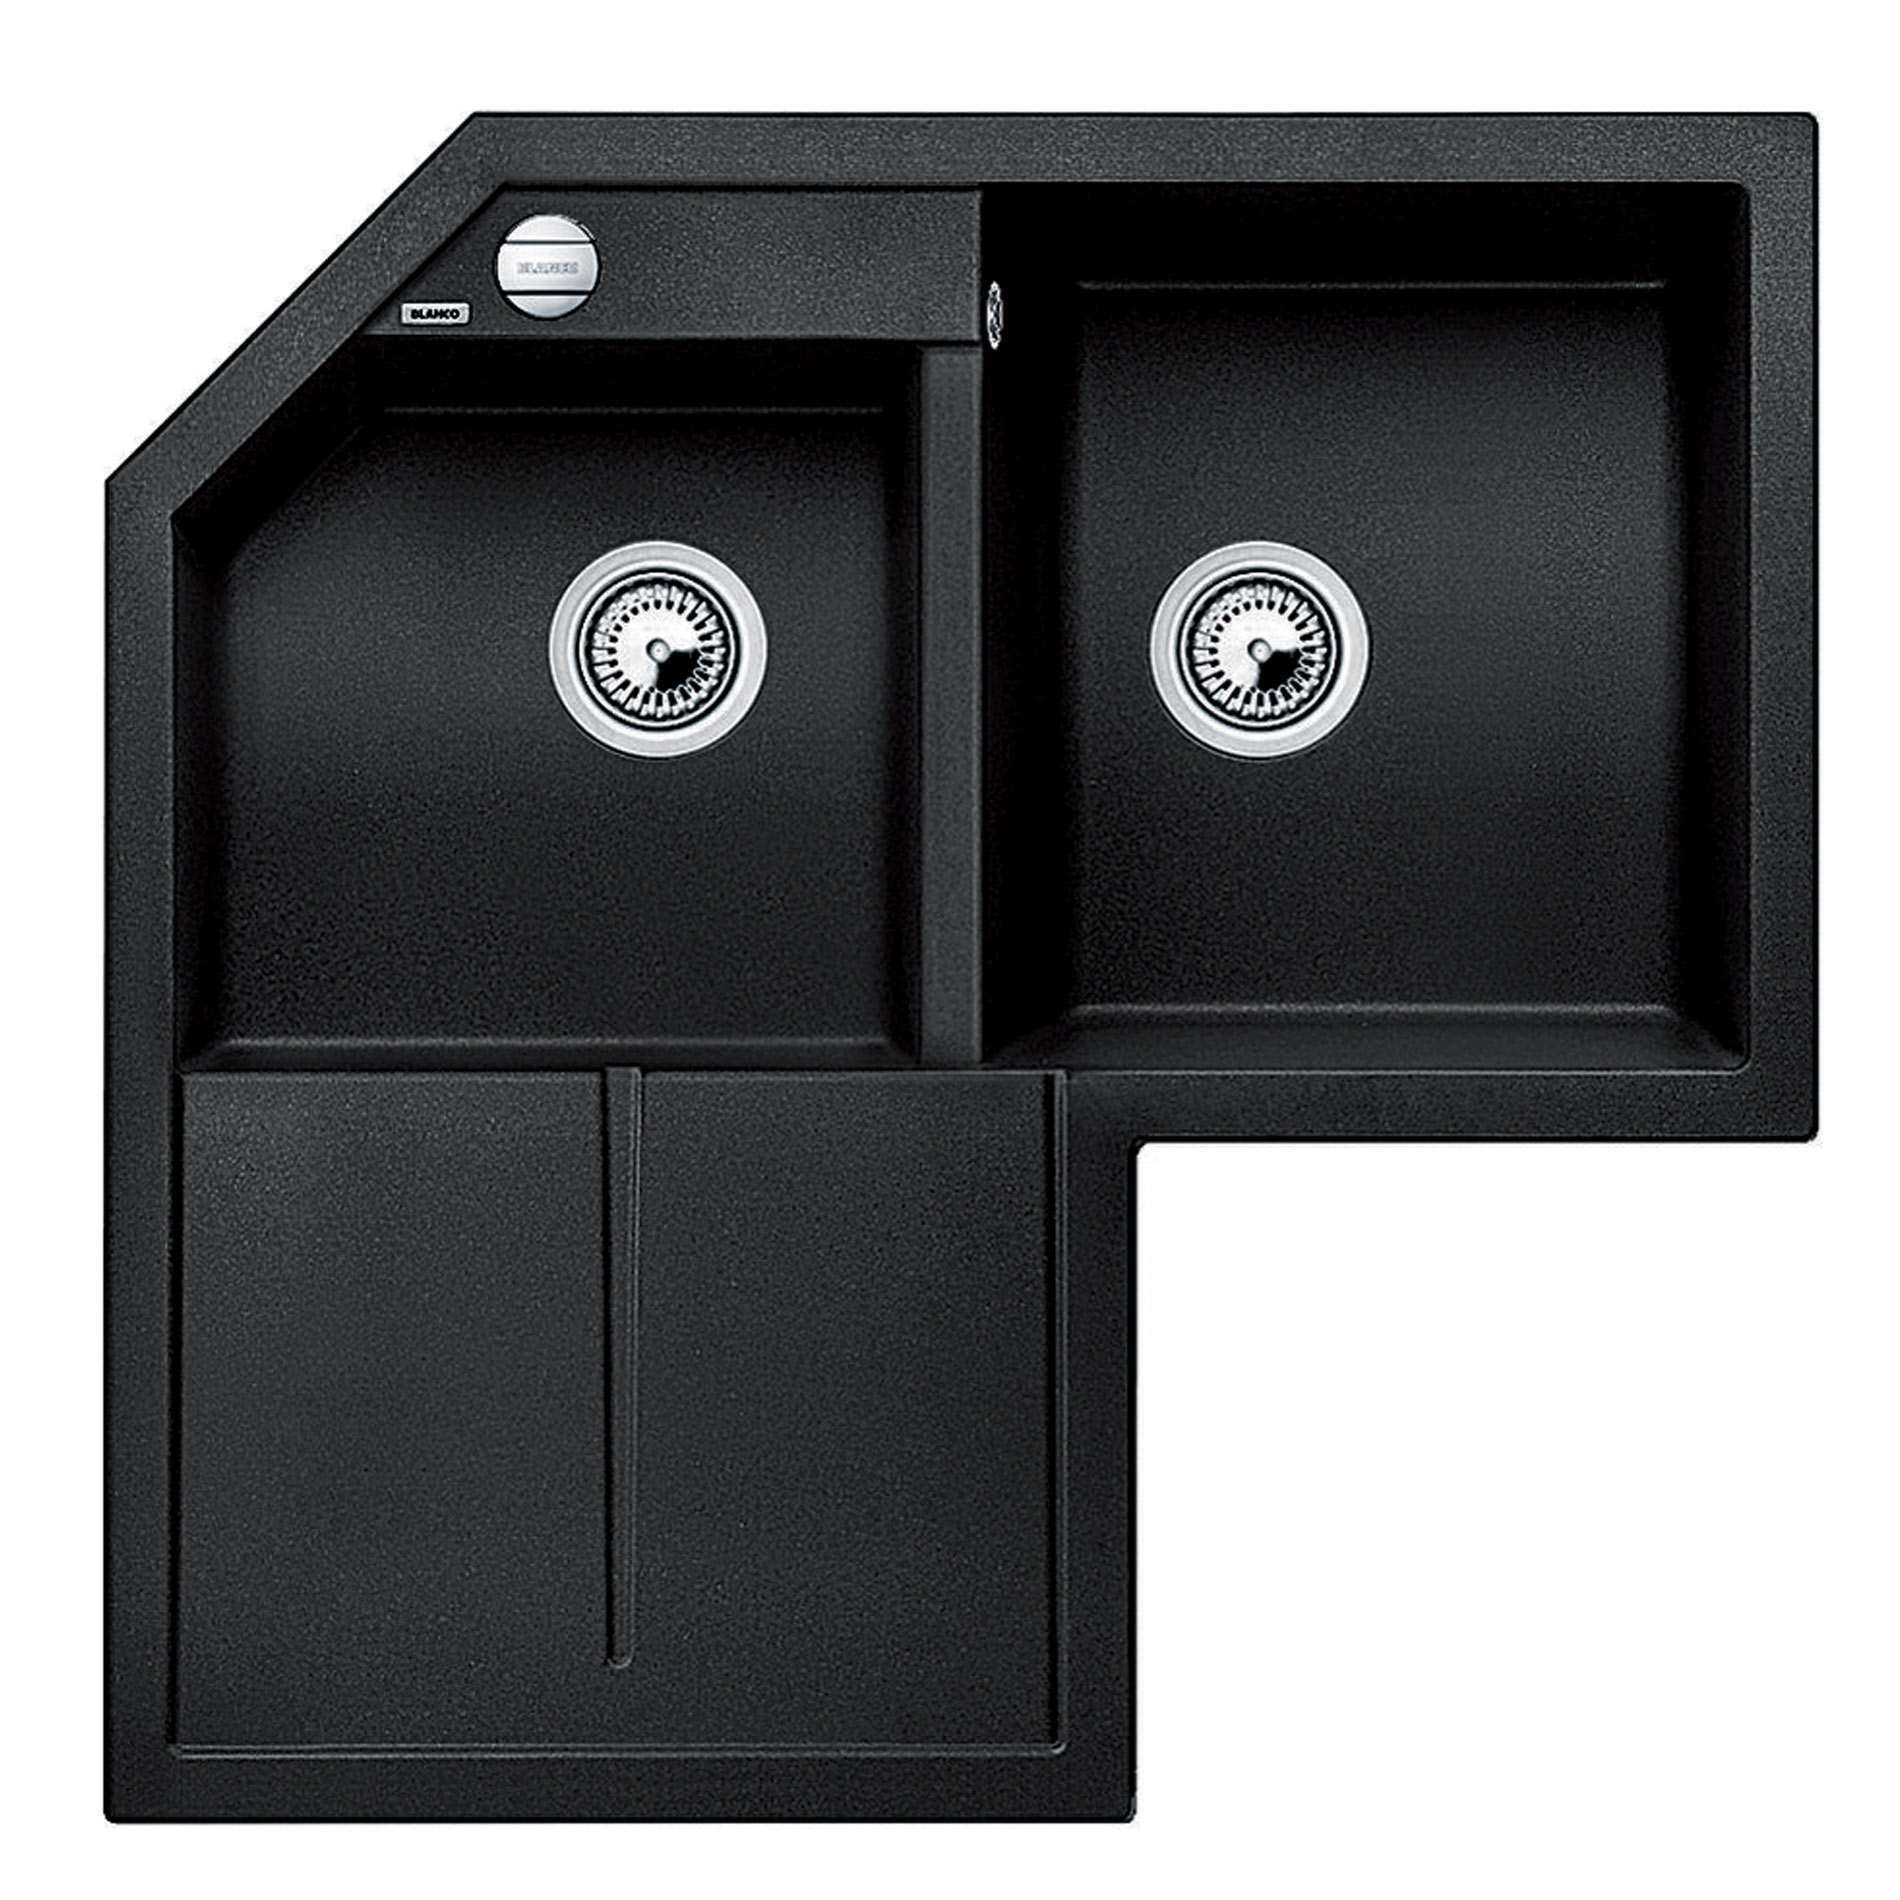 Anthracite Kitchen Sink : Blanco: Metra 9 E Anthracite Silgranit Sink - Kitchen Sinks & Taps